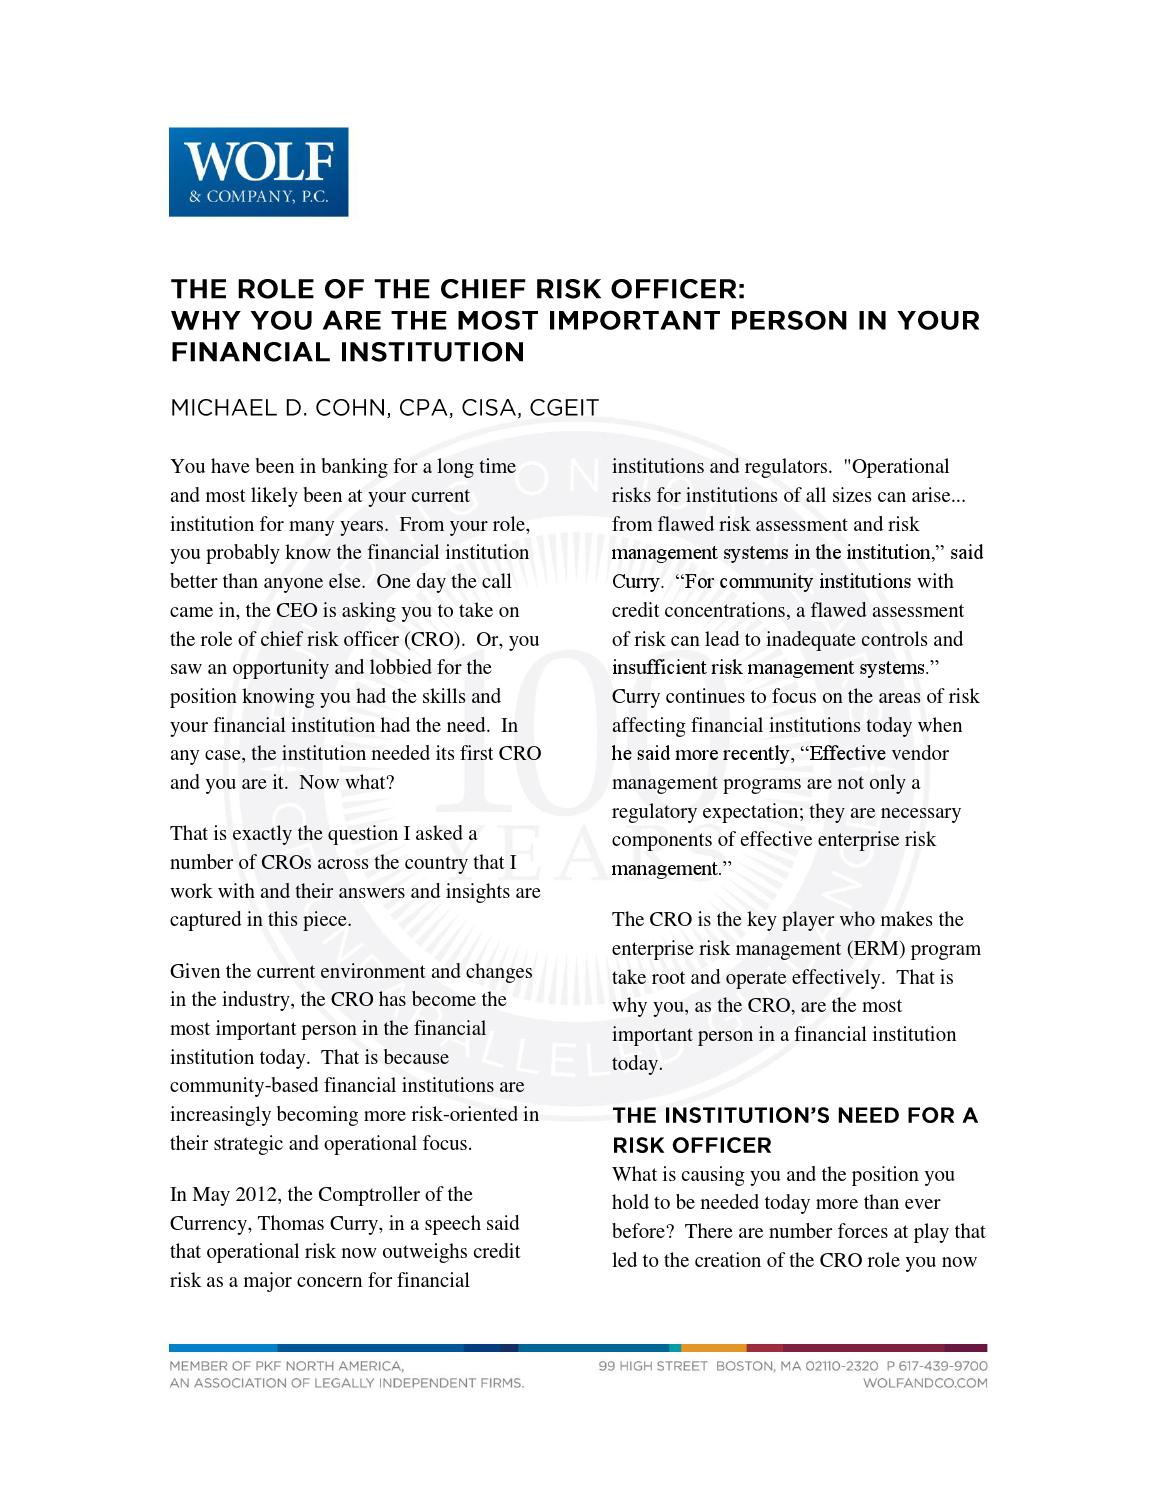 The Role Of Chief Risk Officer Why You Are Most Important Basic Controls A Cro Person In Your Financial By Wolfpac Integrated Management Issuu